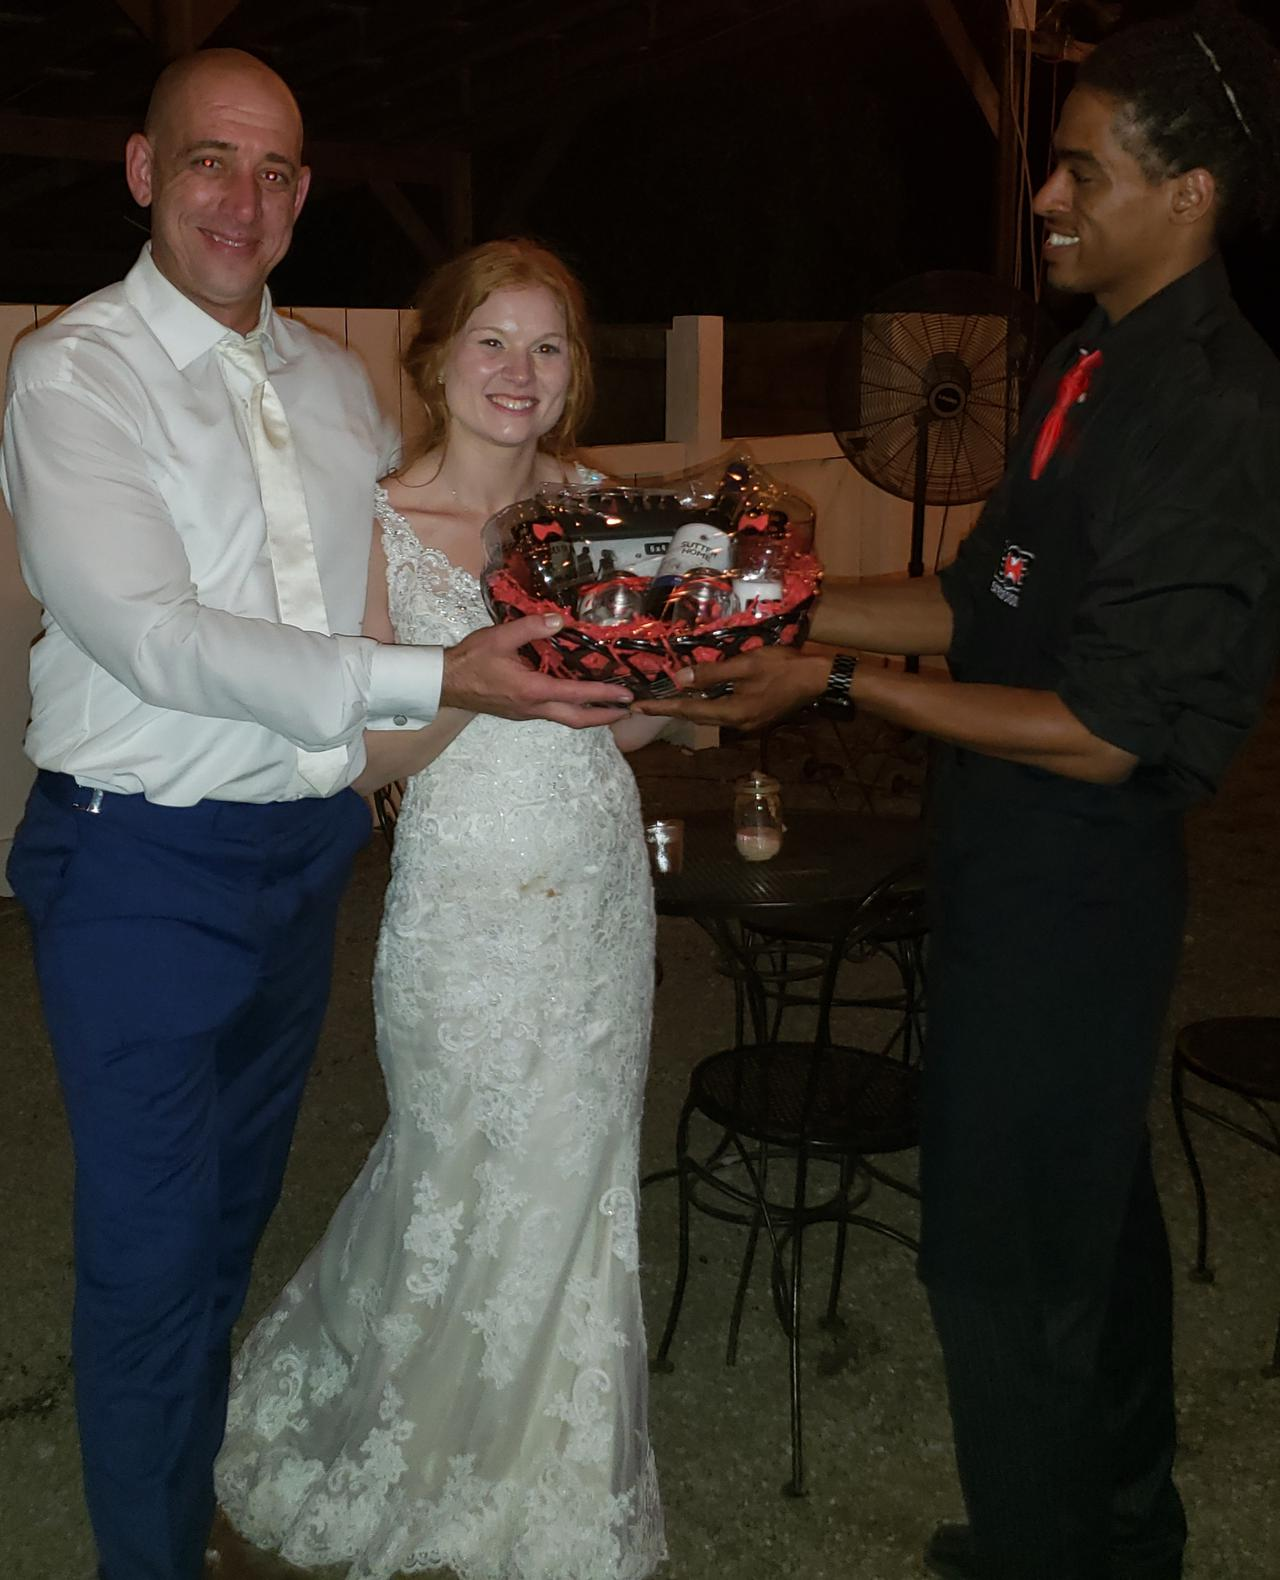 bartender offering tray of drinks to bride and groom at wedding